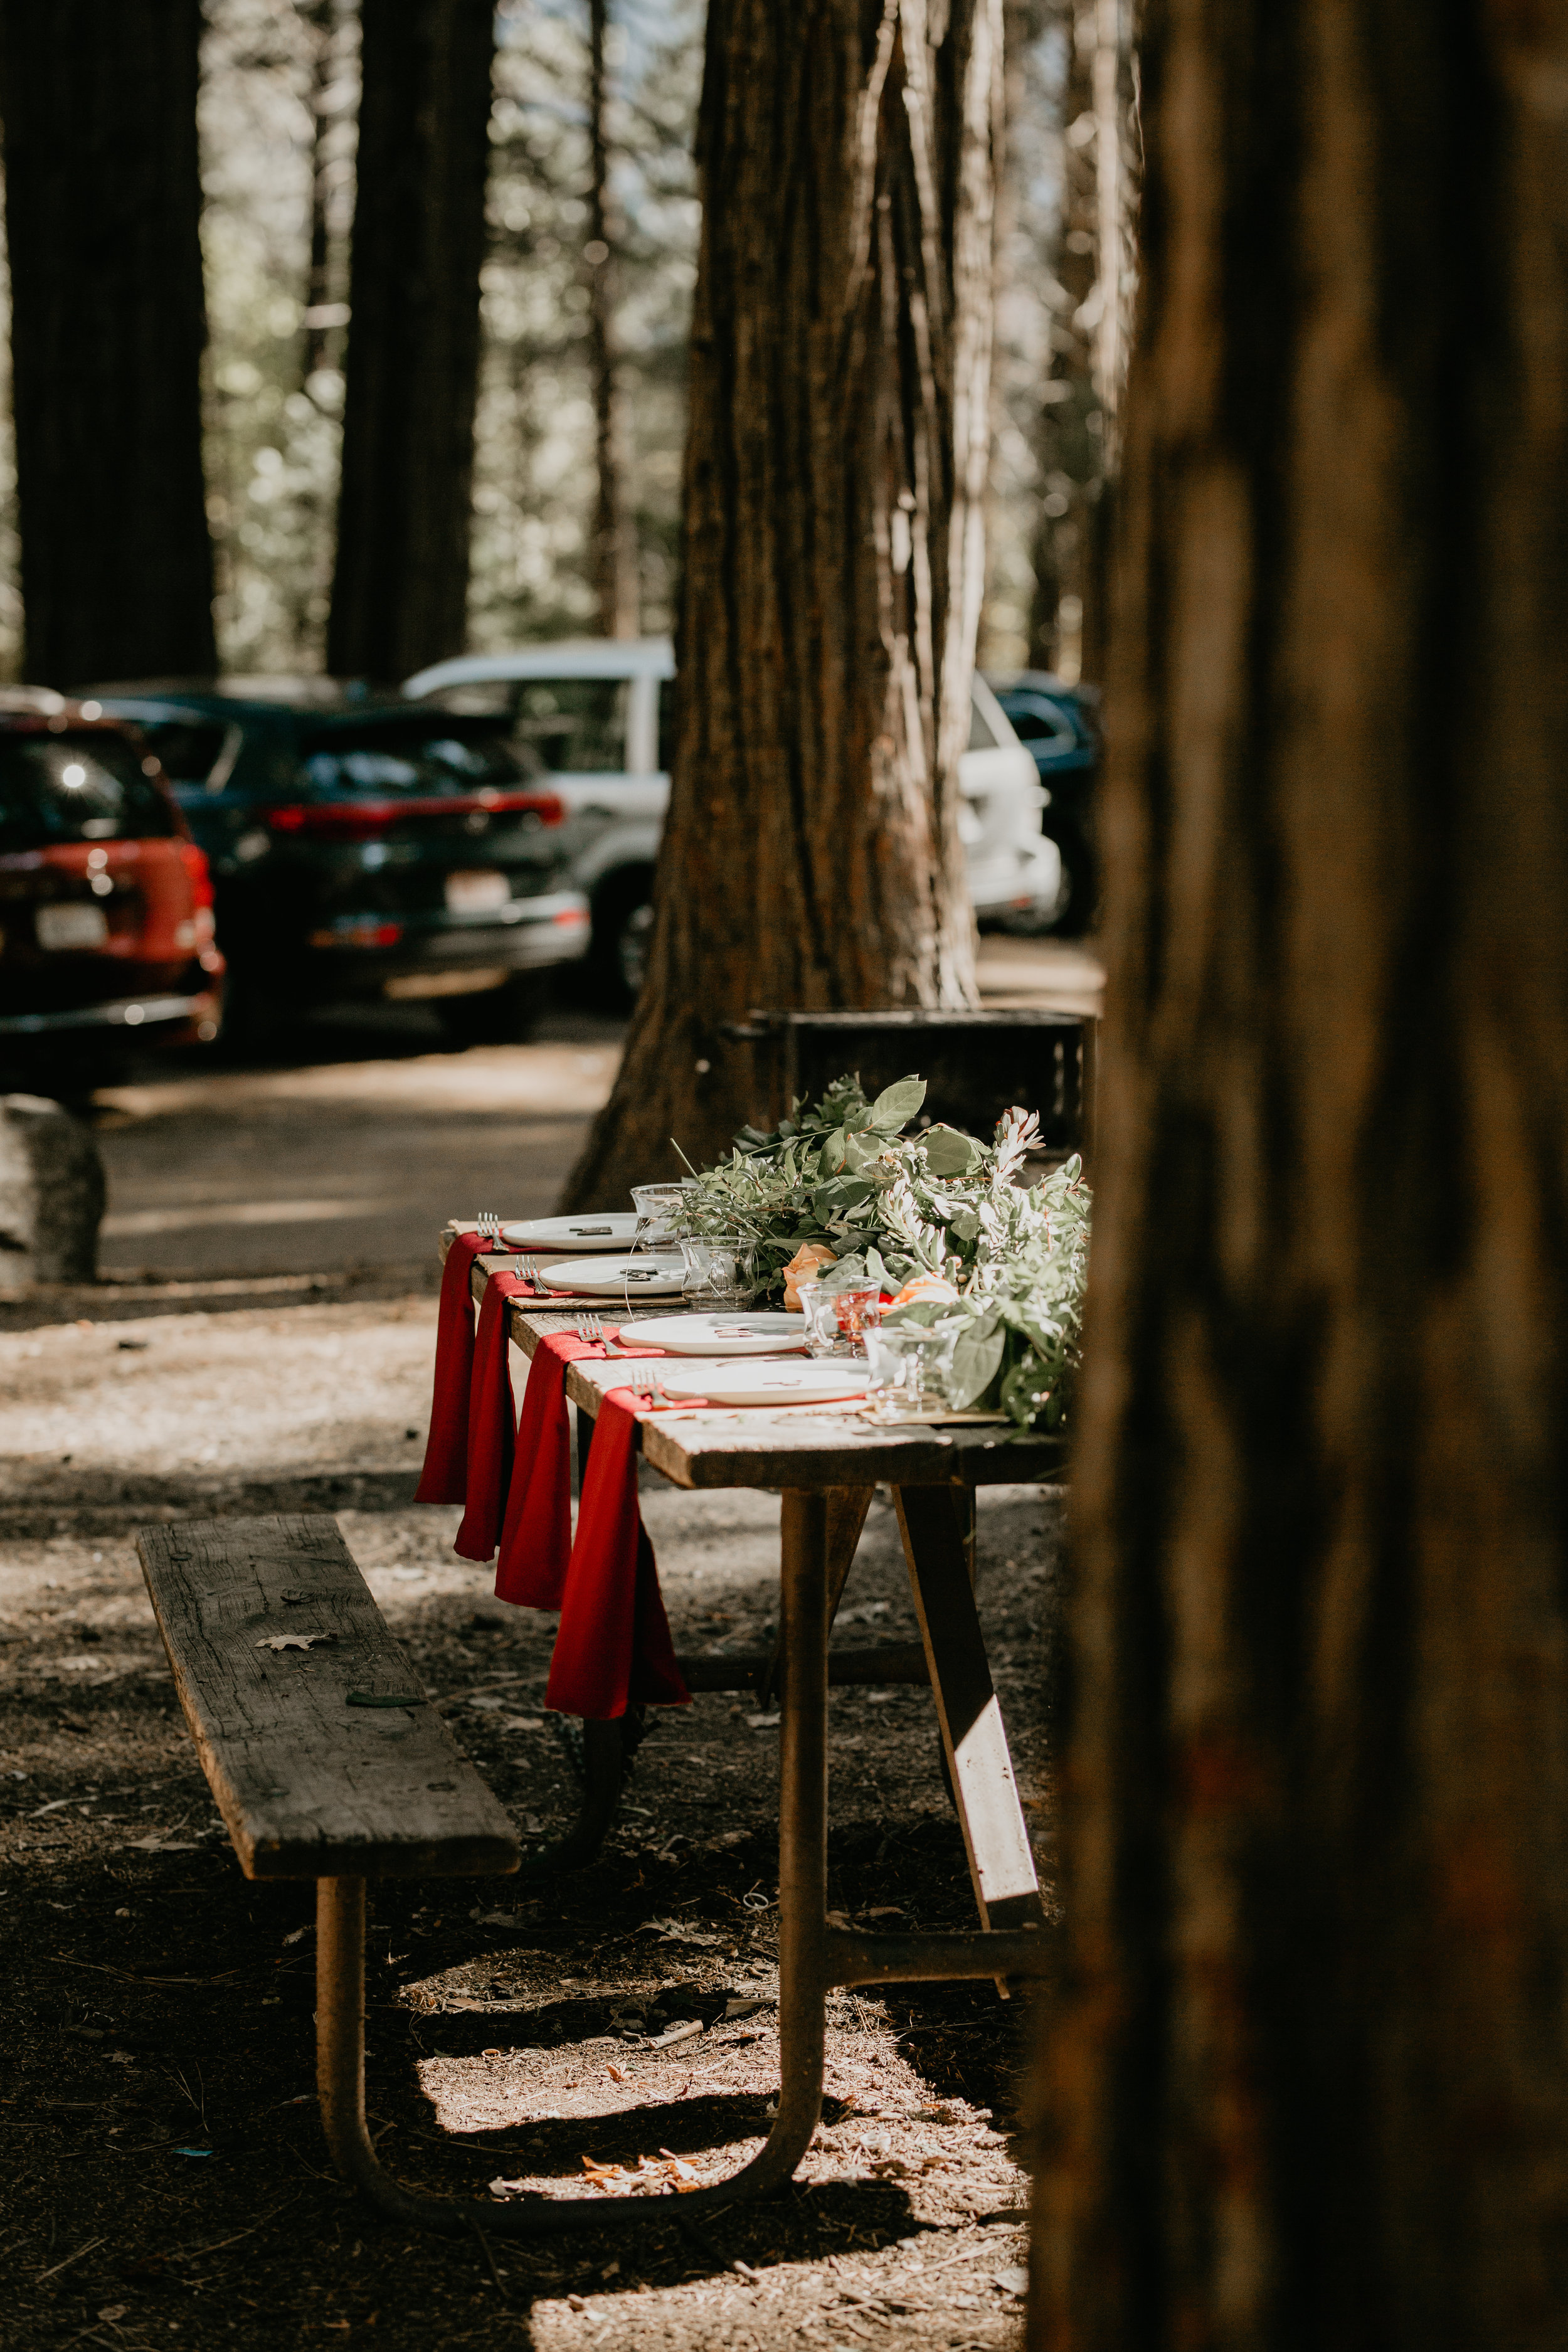 nicole-daacke-photography-intimate-elopement-wedding-yosemite-national-park-california-taft-point-sunset-photos-yosemite-valley-tunnel-view-first-look-sunrise-golden-granite-hiking-adventure-wedding-adventurous-elopement-photographer-66.jpg